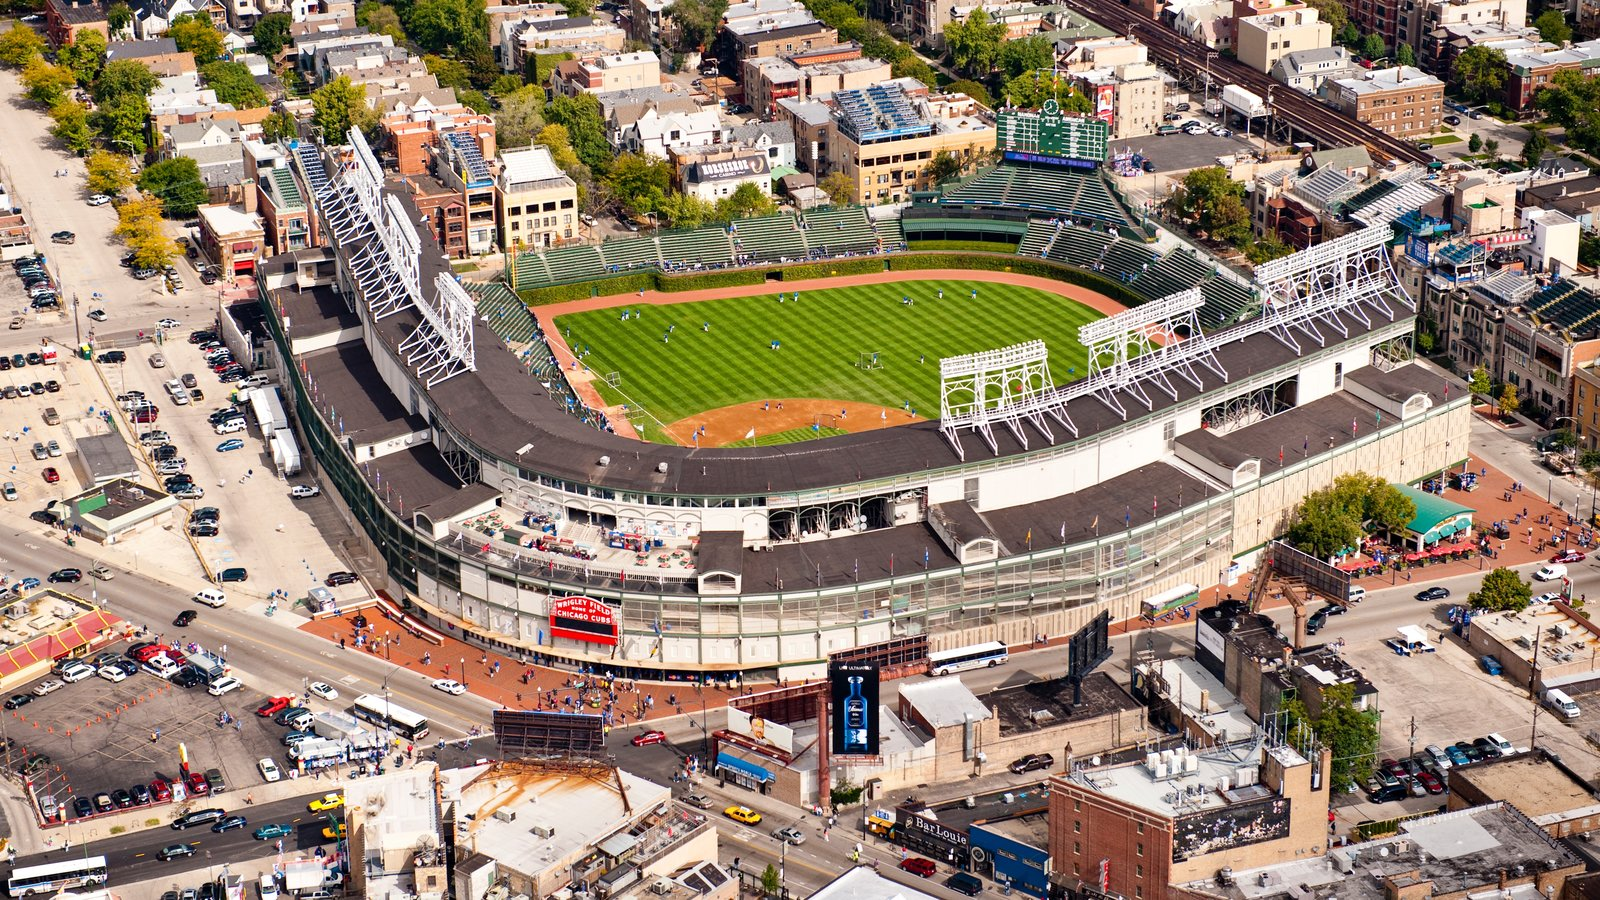 Wrigley Field featuring cbd, a sporting event and a city